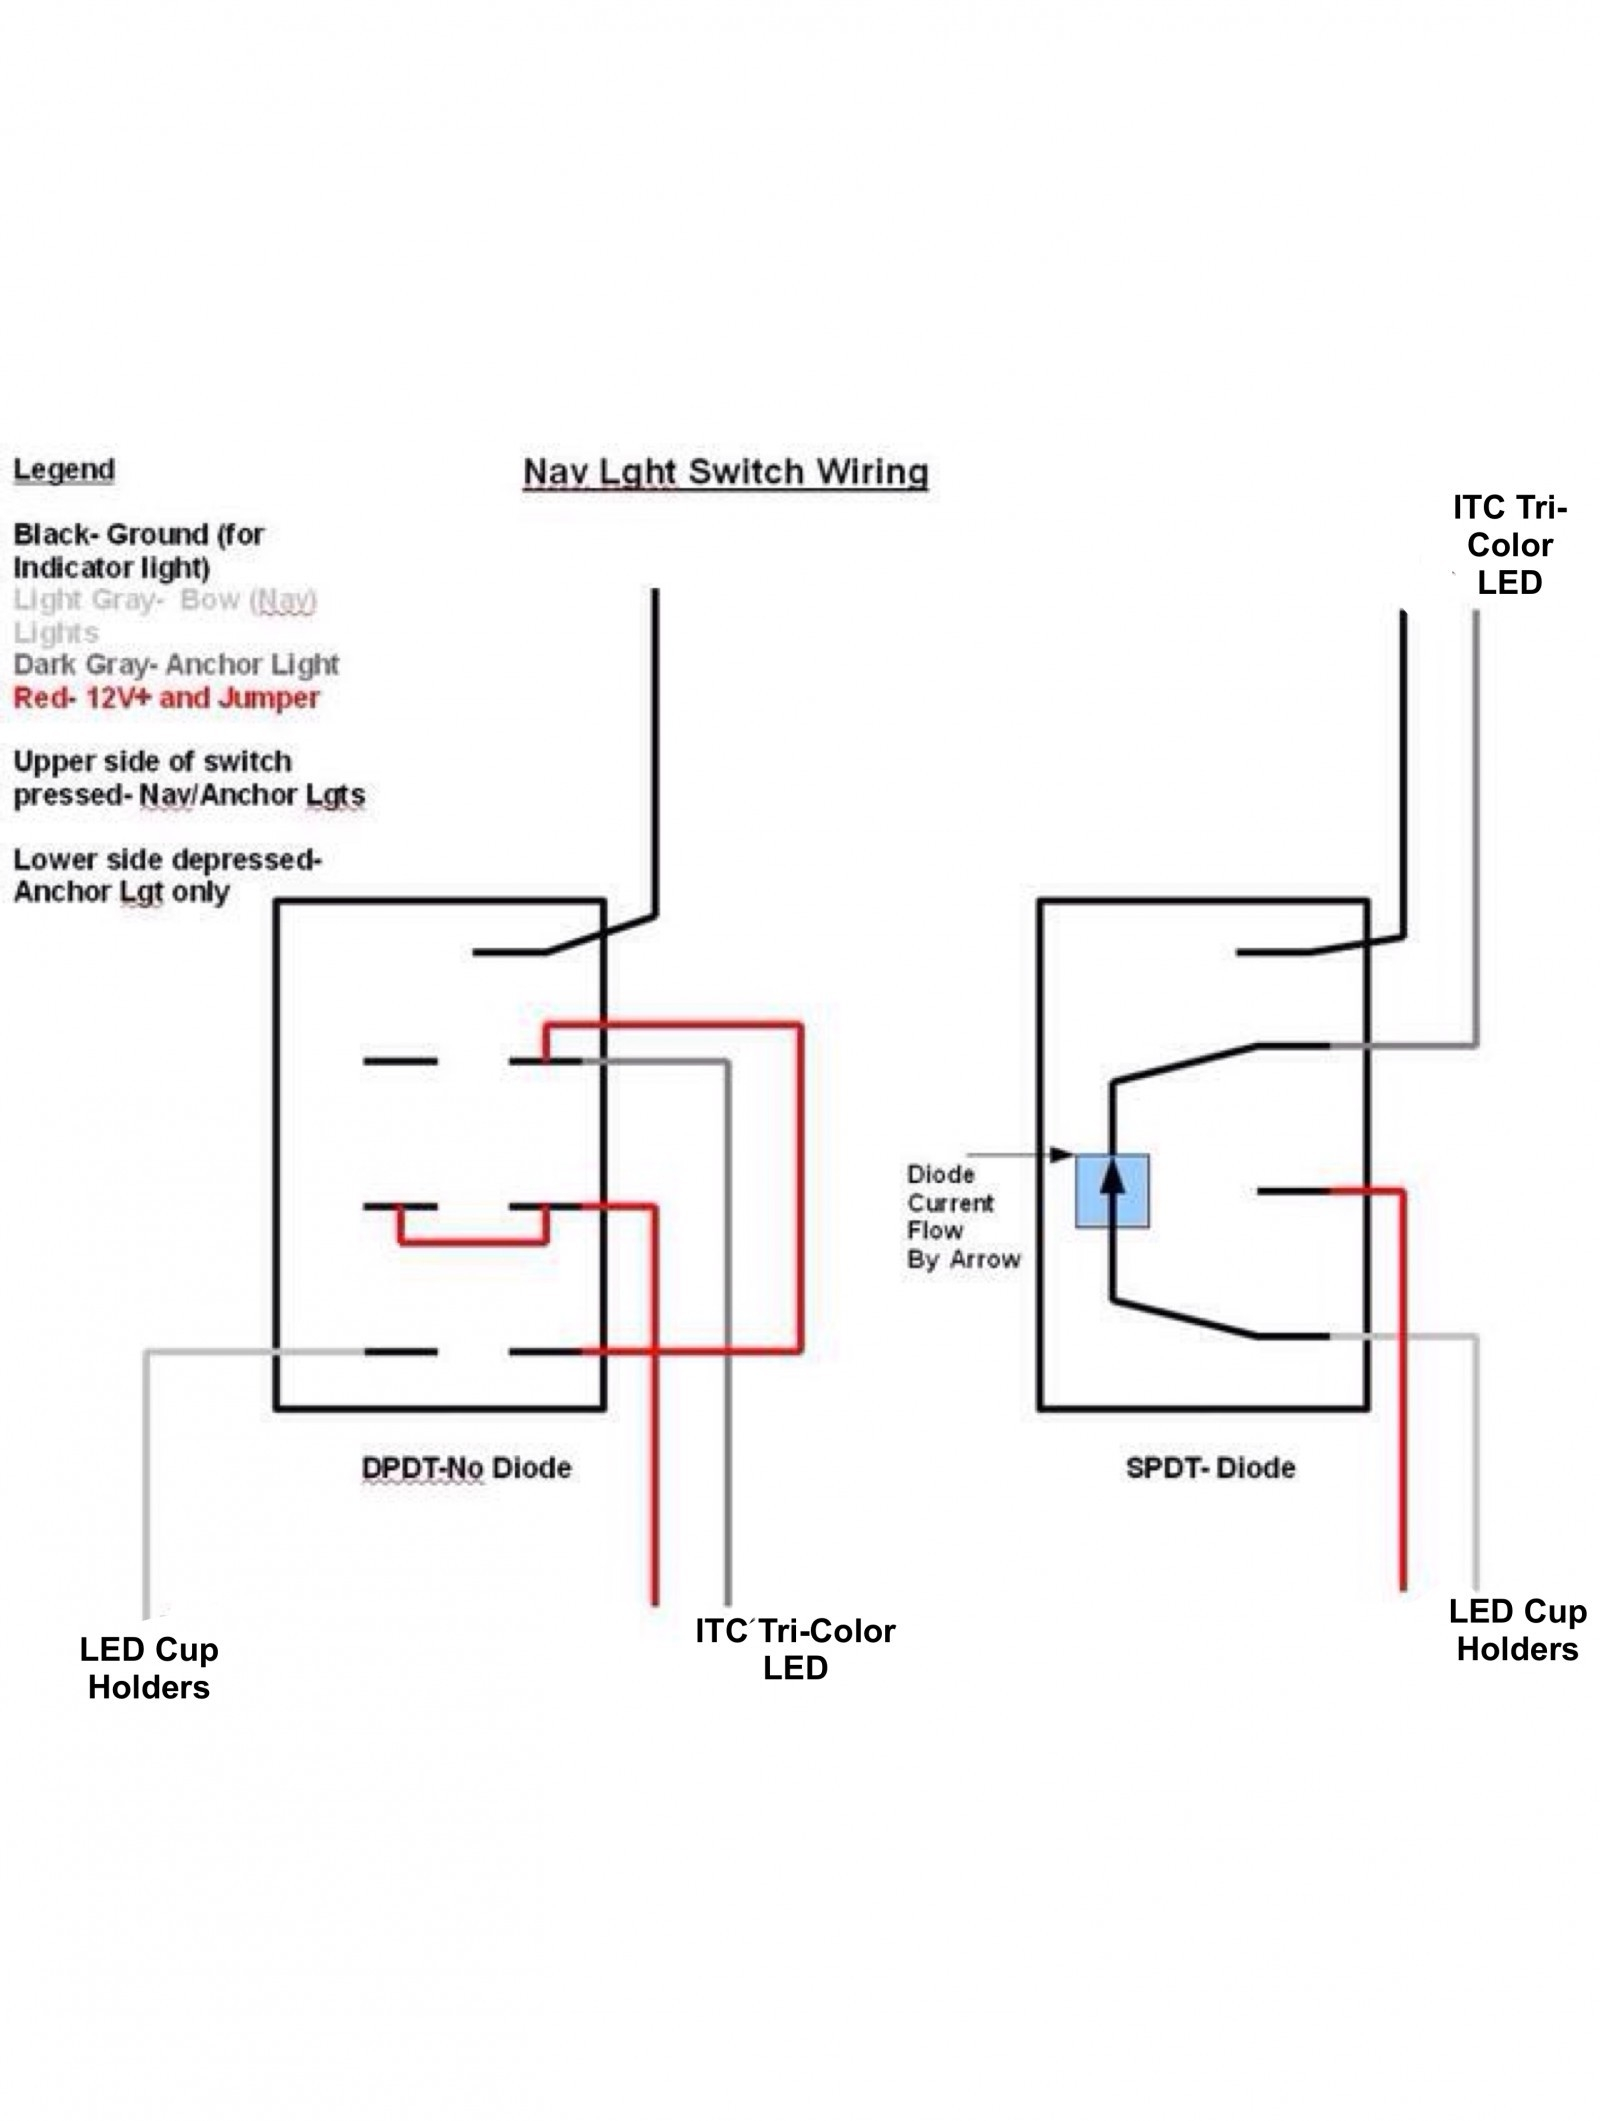 leviton double pole switch wiring diagram free wiring. Black Bedroom Furniture Sets. Home Design Ideas